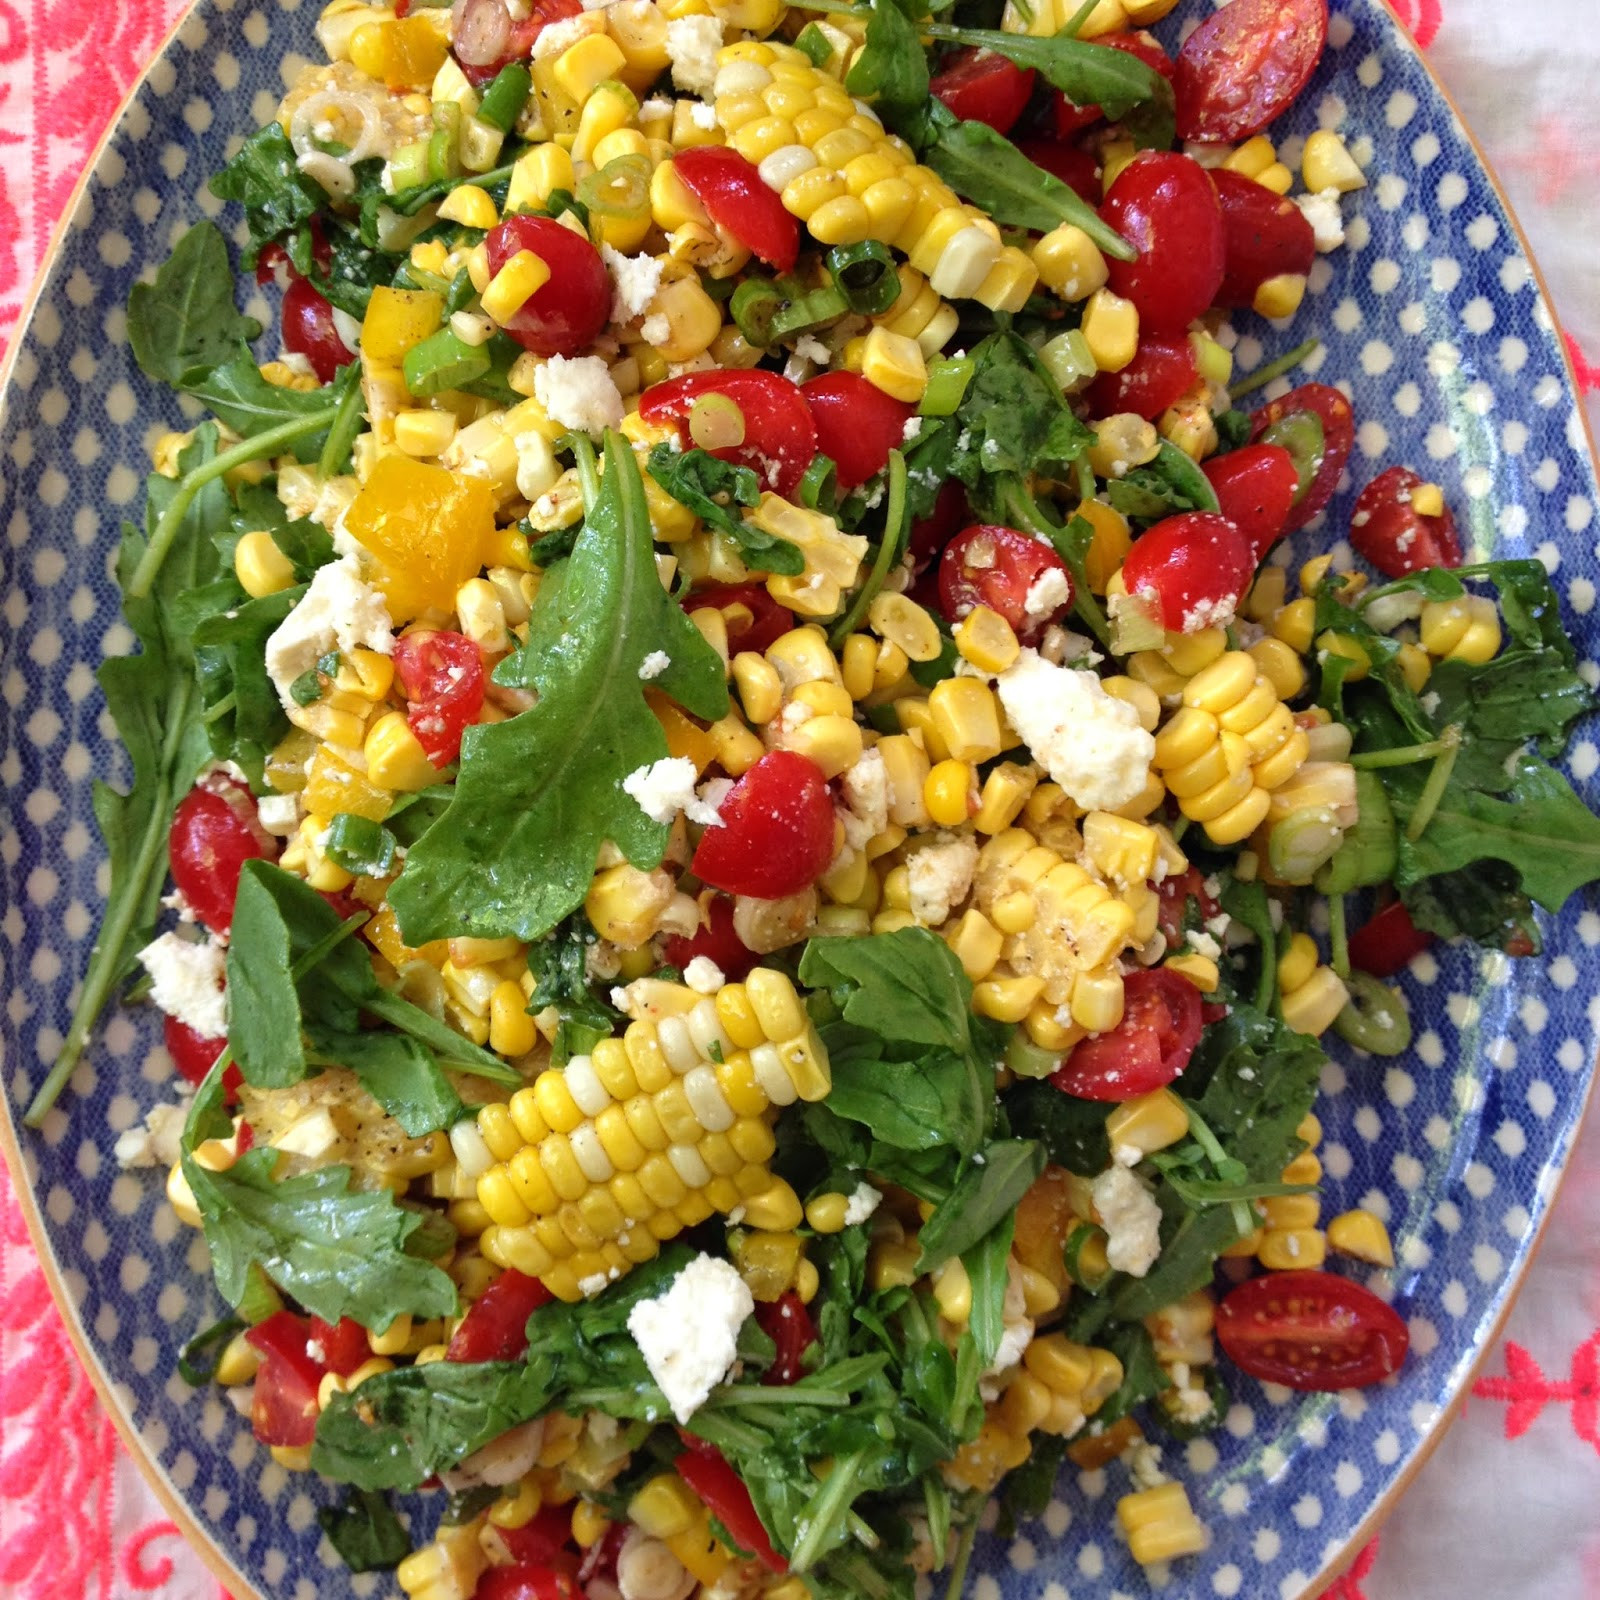 Summer Corn Salad  Summer Corn Salad Open Door Shop Designer Bags & Dirty